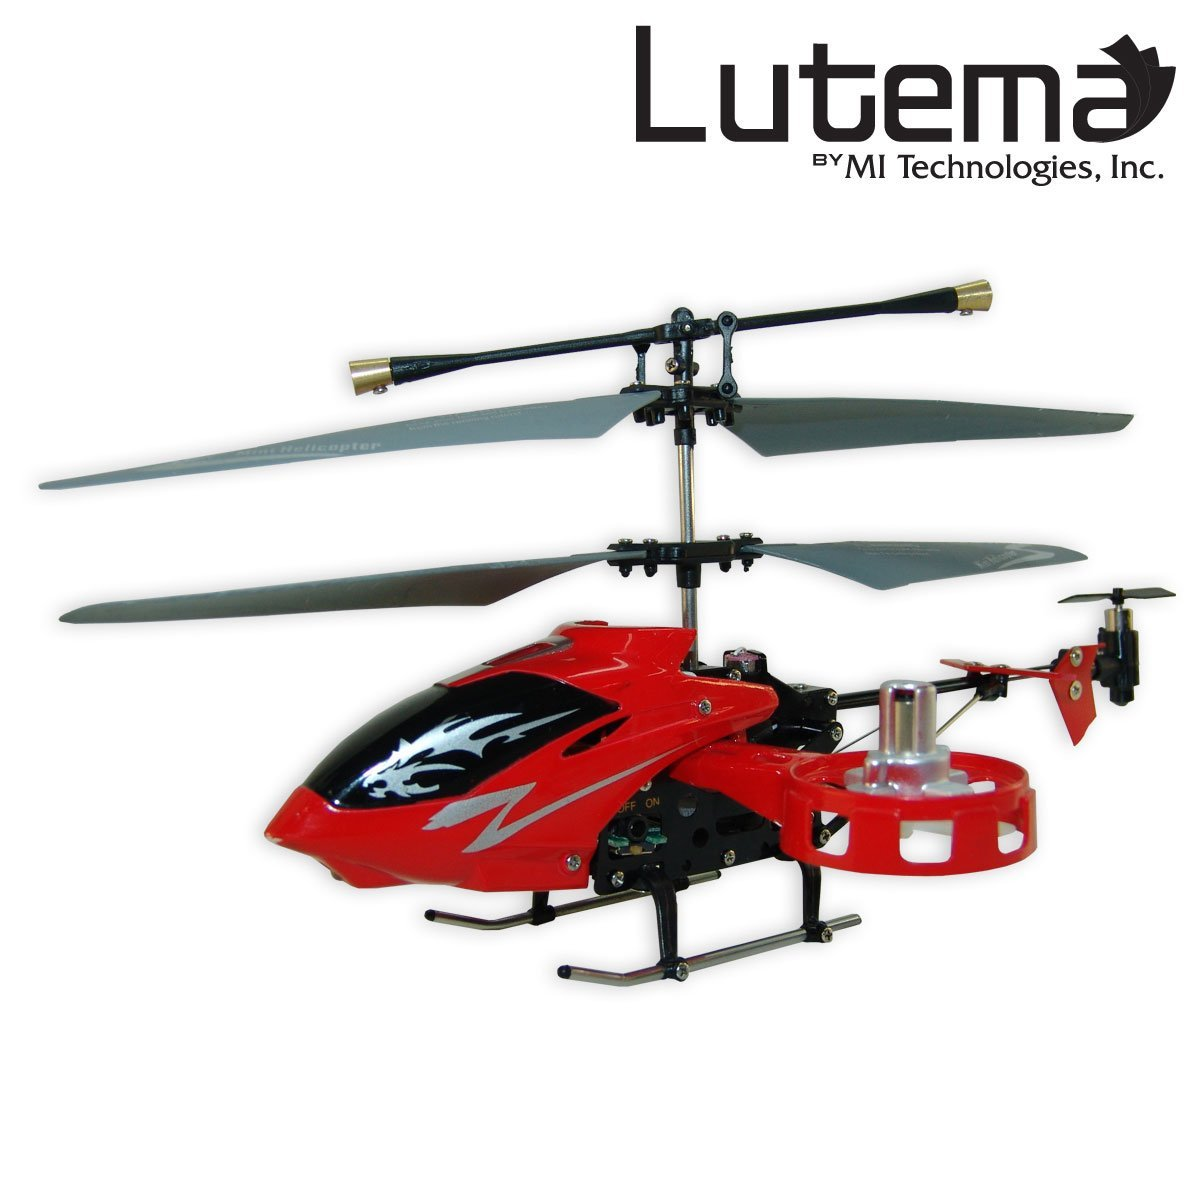 remote control helicopter for adults with 3463 on Rc Cars For Adults likewise B071GNCMVR additionally Rc Semi Trucks For Adults besides Radio Controlled Jet Engines as well Blog Post 2.